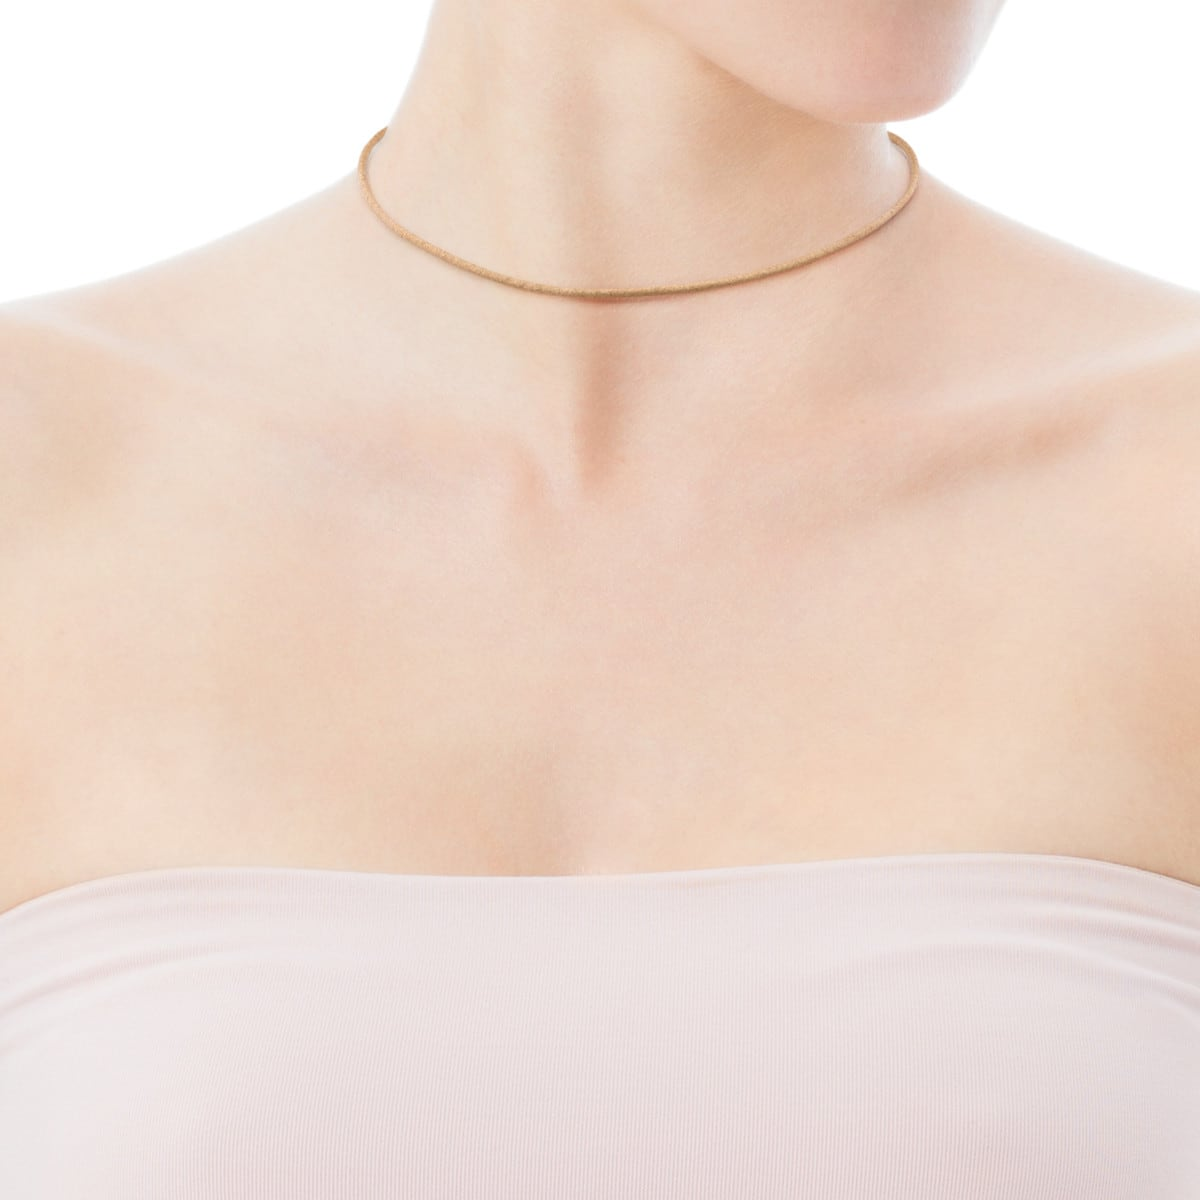 Rose Vermeil Silver TOUS Chokers Necklace